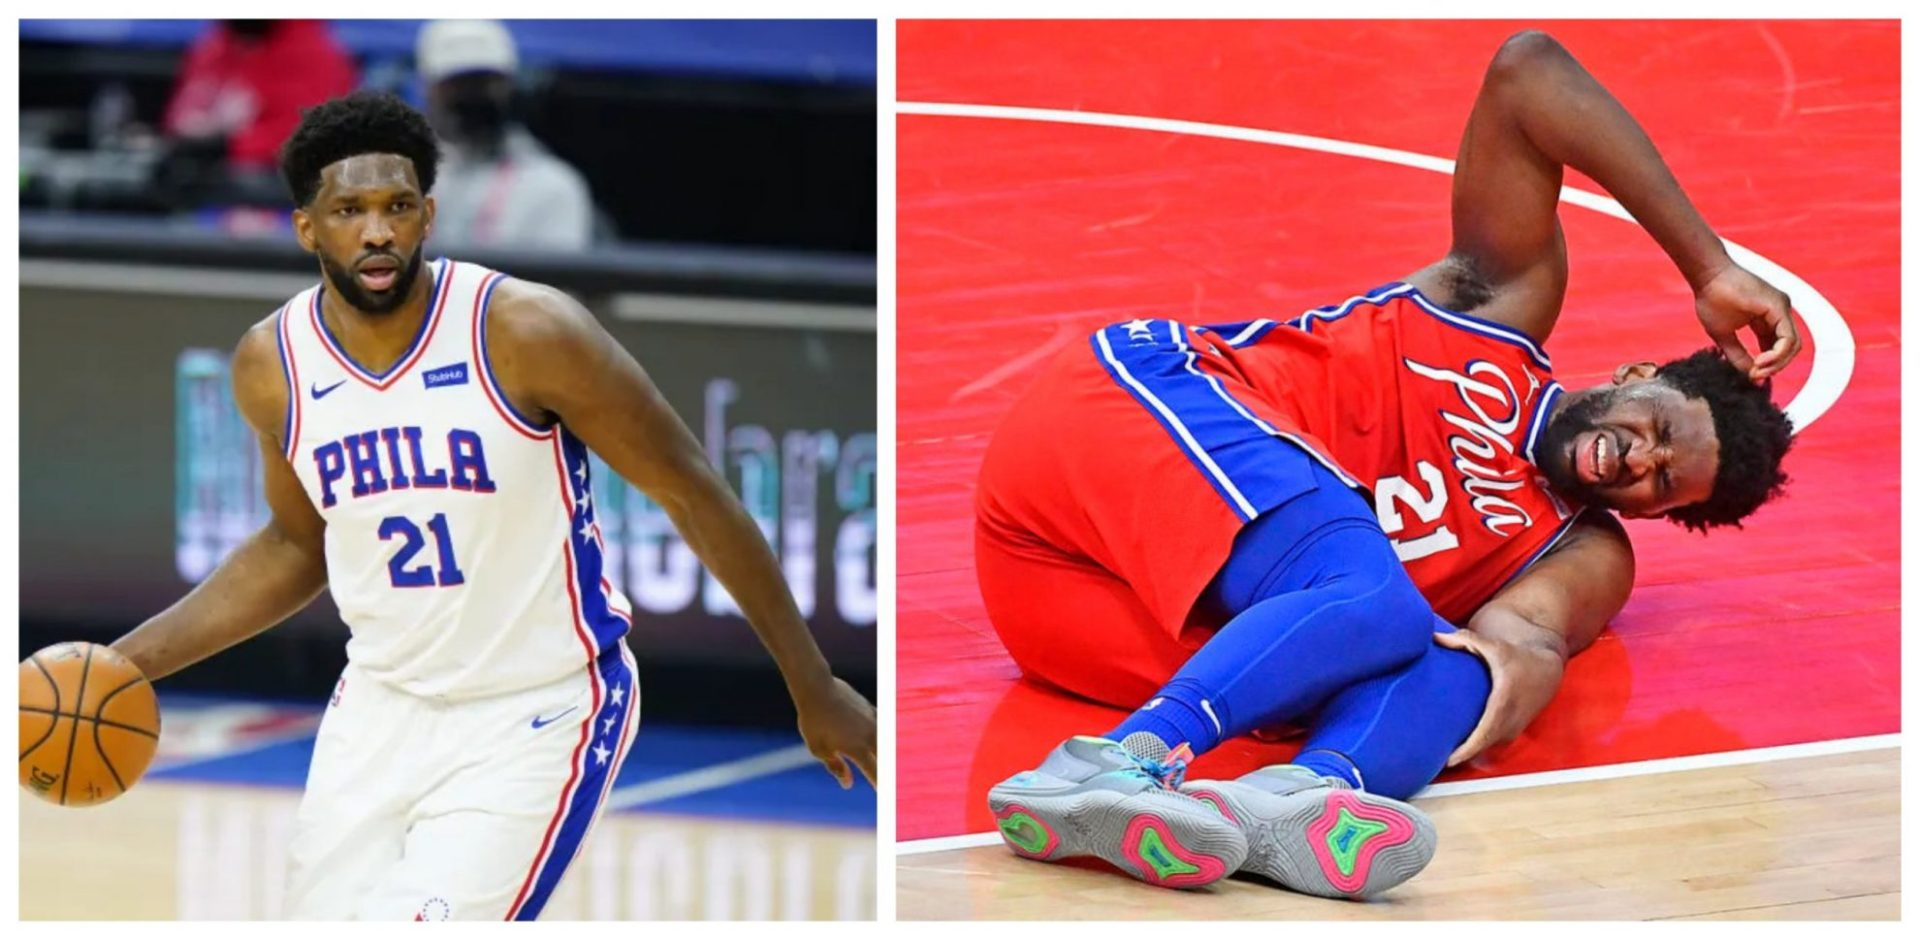 Joel Embiid slated to start for 76ers against Timberwolves - THE SPORTS ROOM